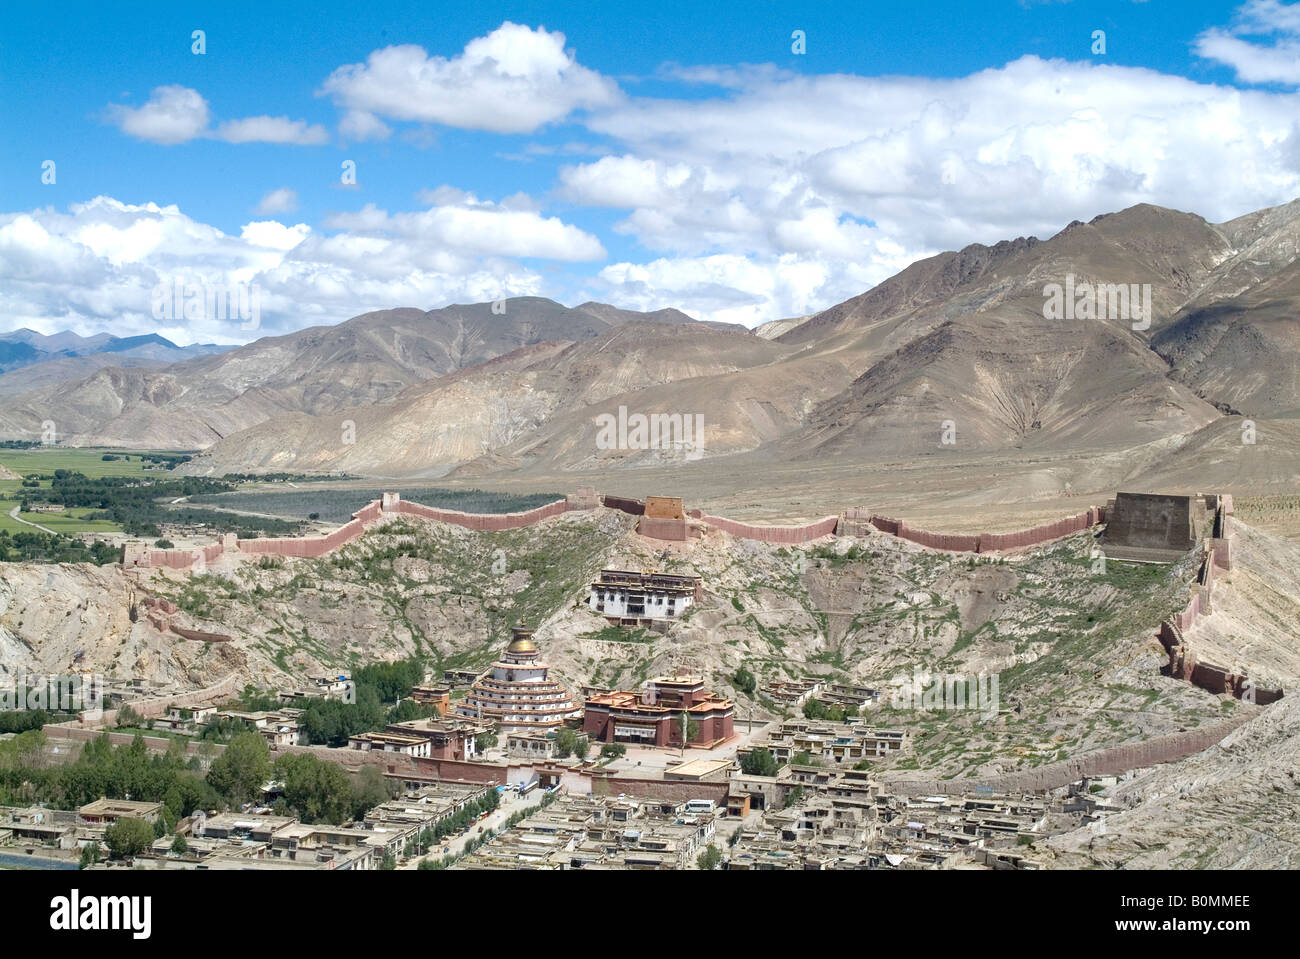 View from Fort overlooking Gyantse, including Kumbum, Tibet, China. - Stock Image